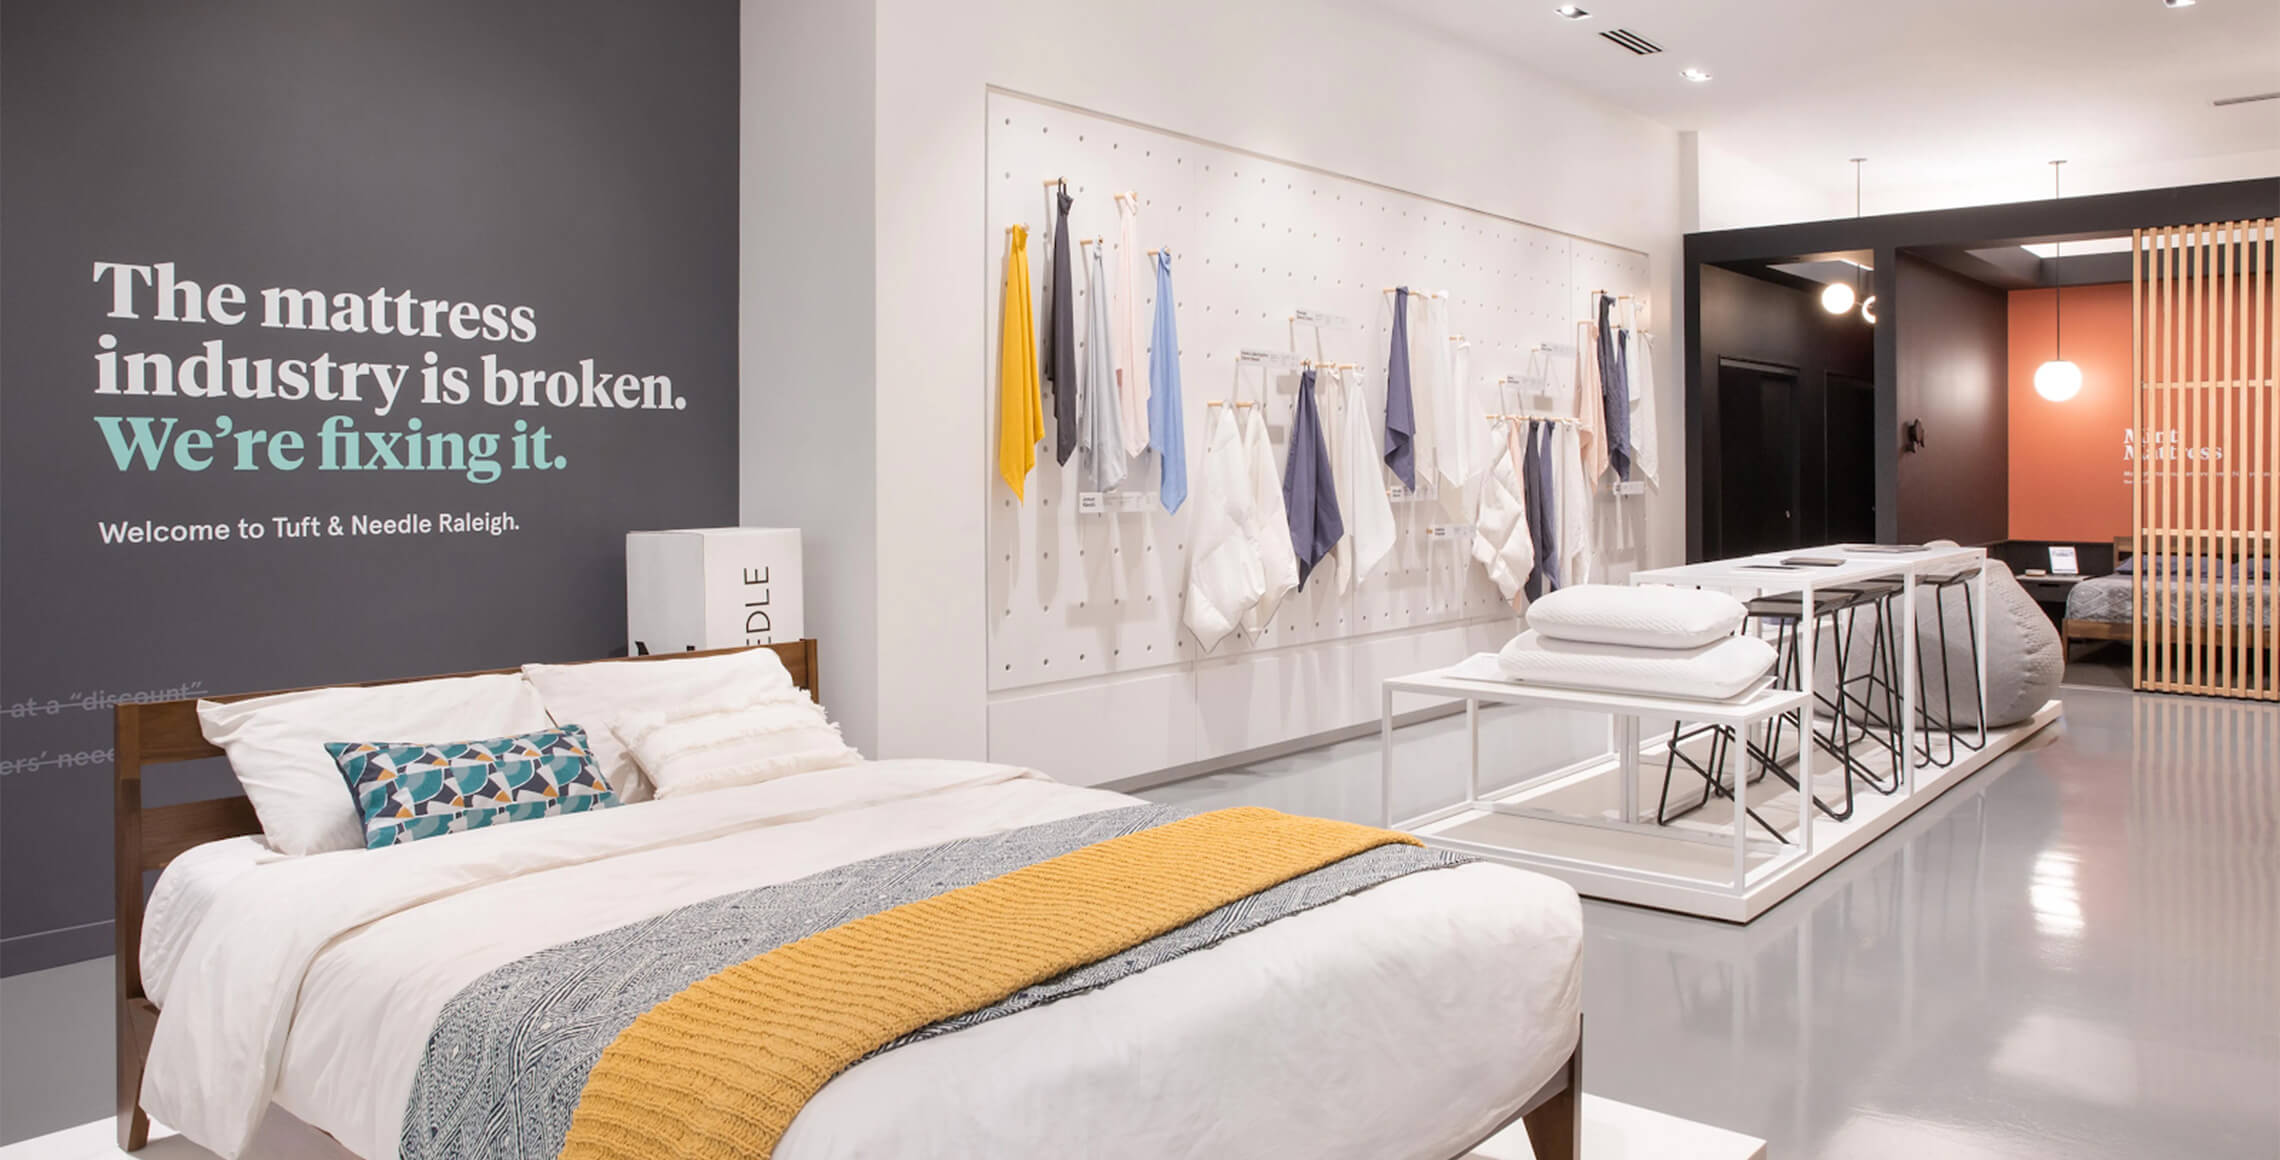 7 customer experience tips for D2C brands breaking into brick-and-mortar